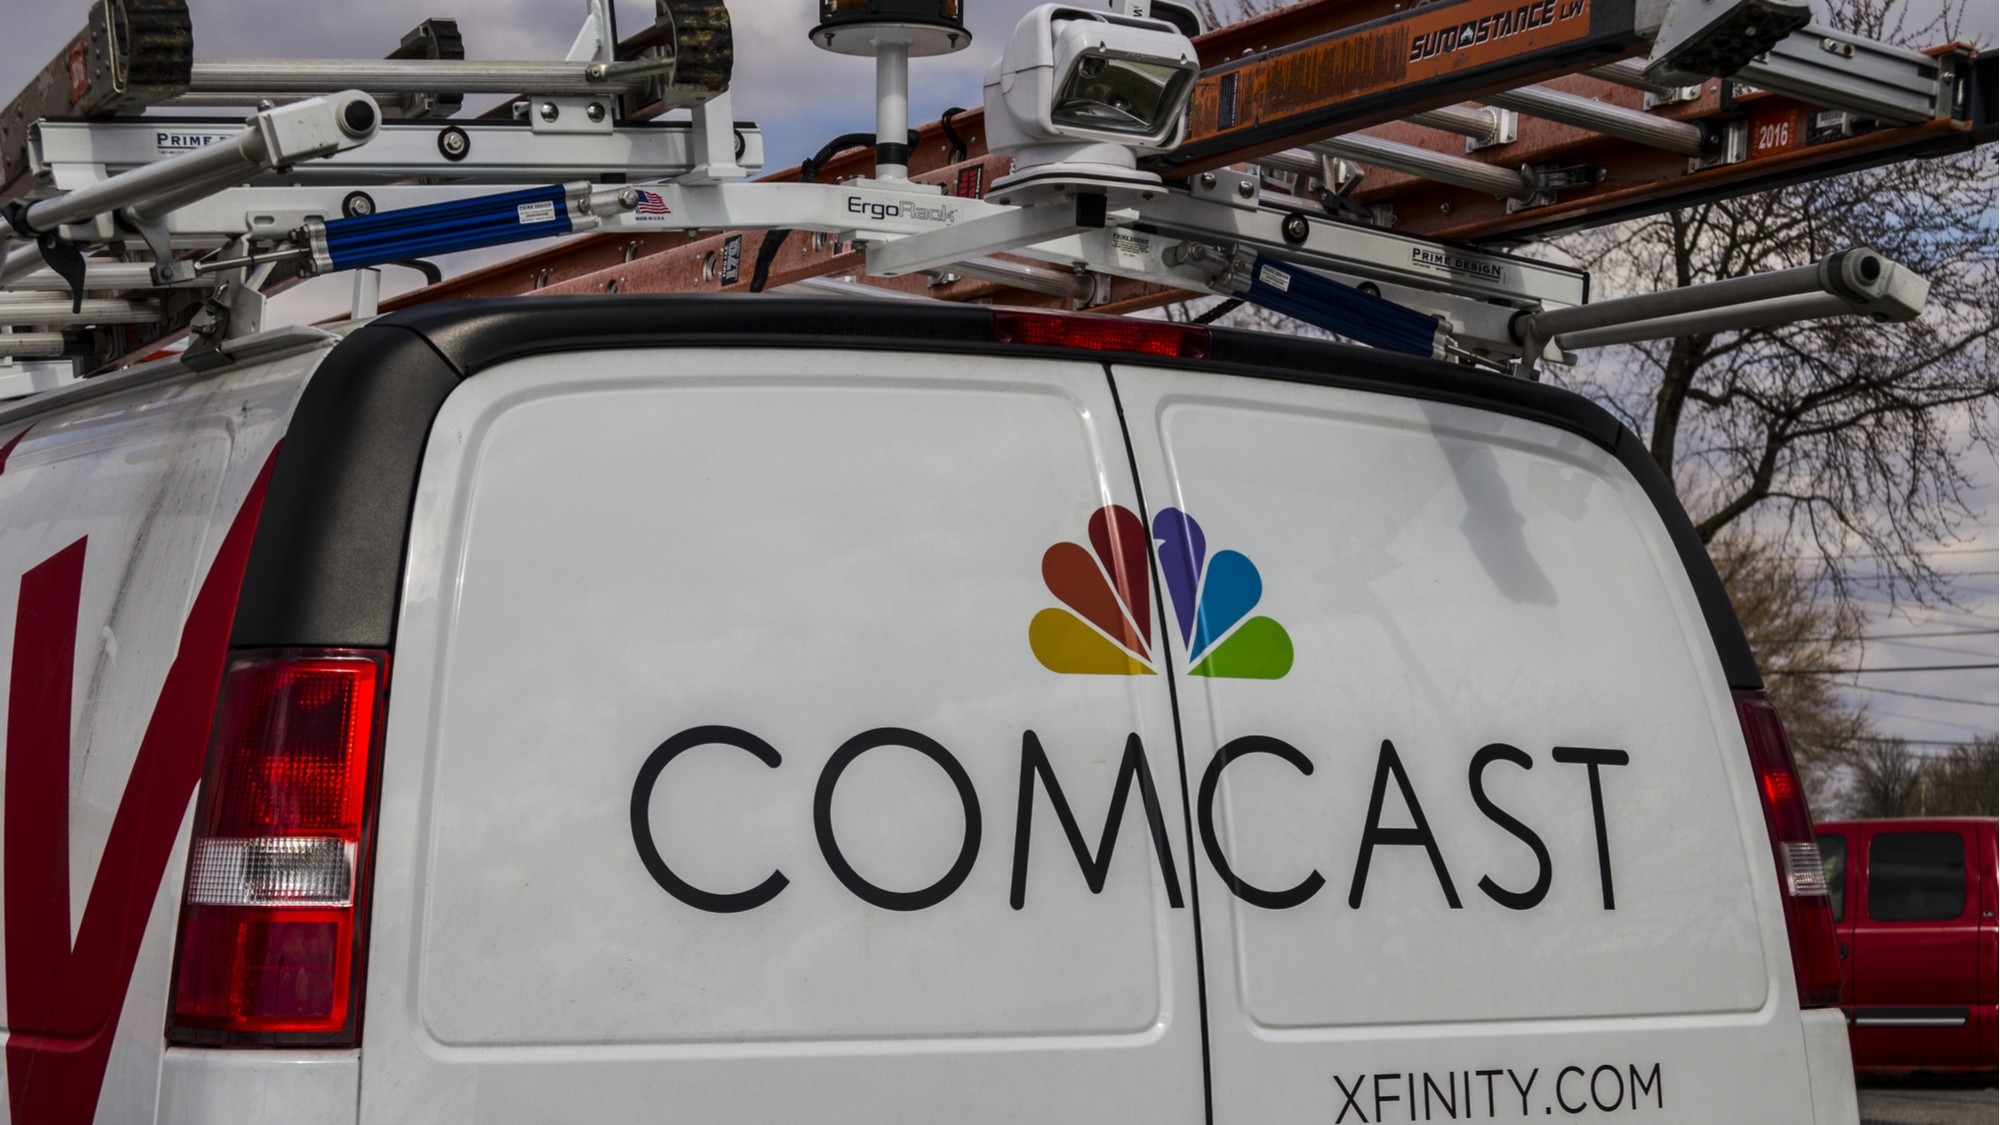 America Hates Comcast More Than Ever – A new survey indicates Americans' dislike of giant cable companies is only growing, and the rising flood of streaming alternatives like Netflix are beating the industry at its own game.